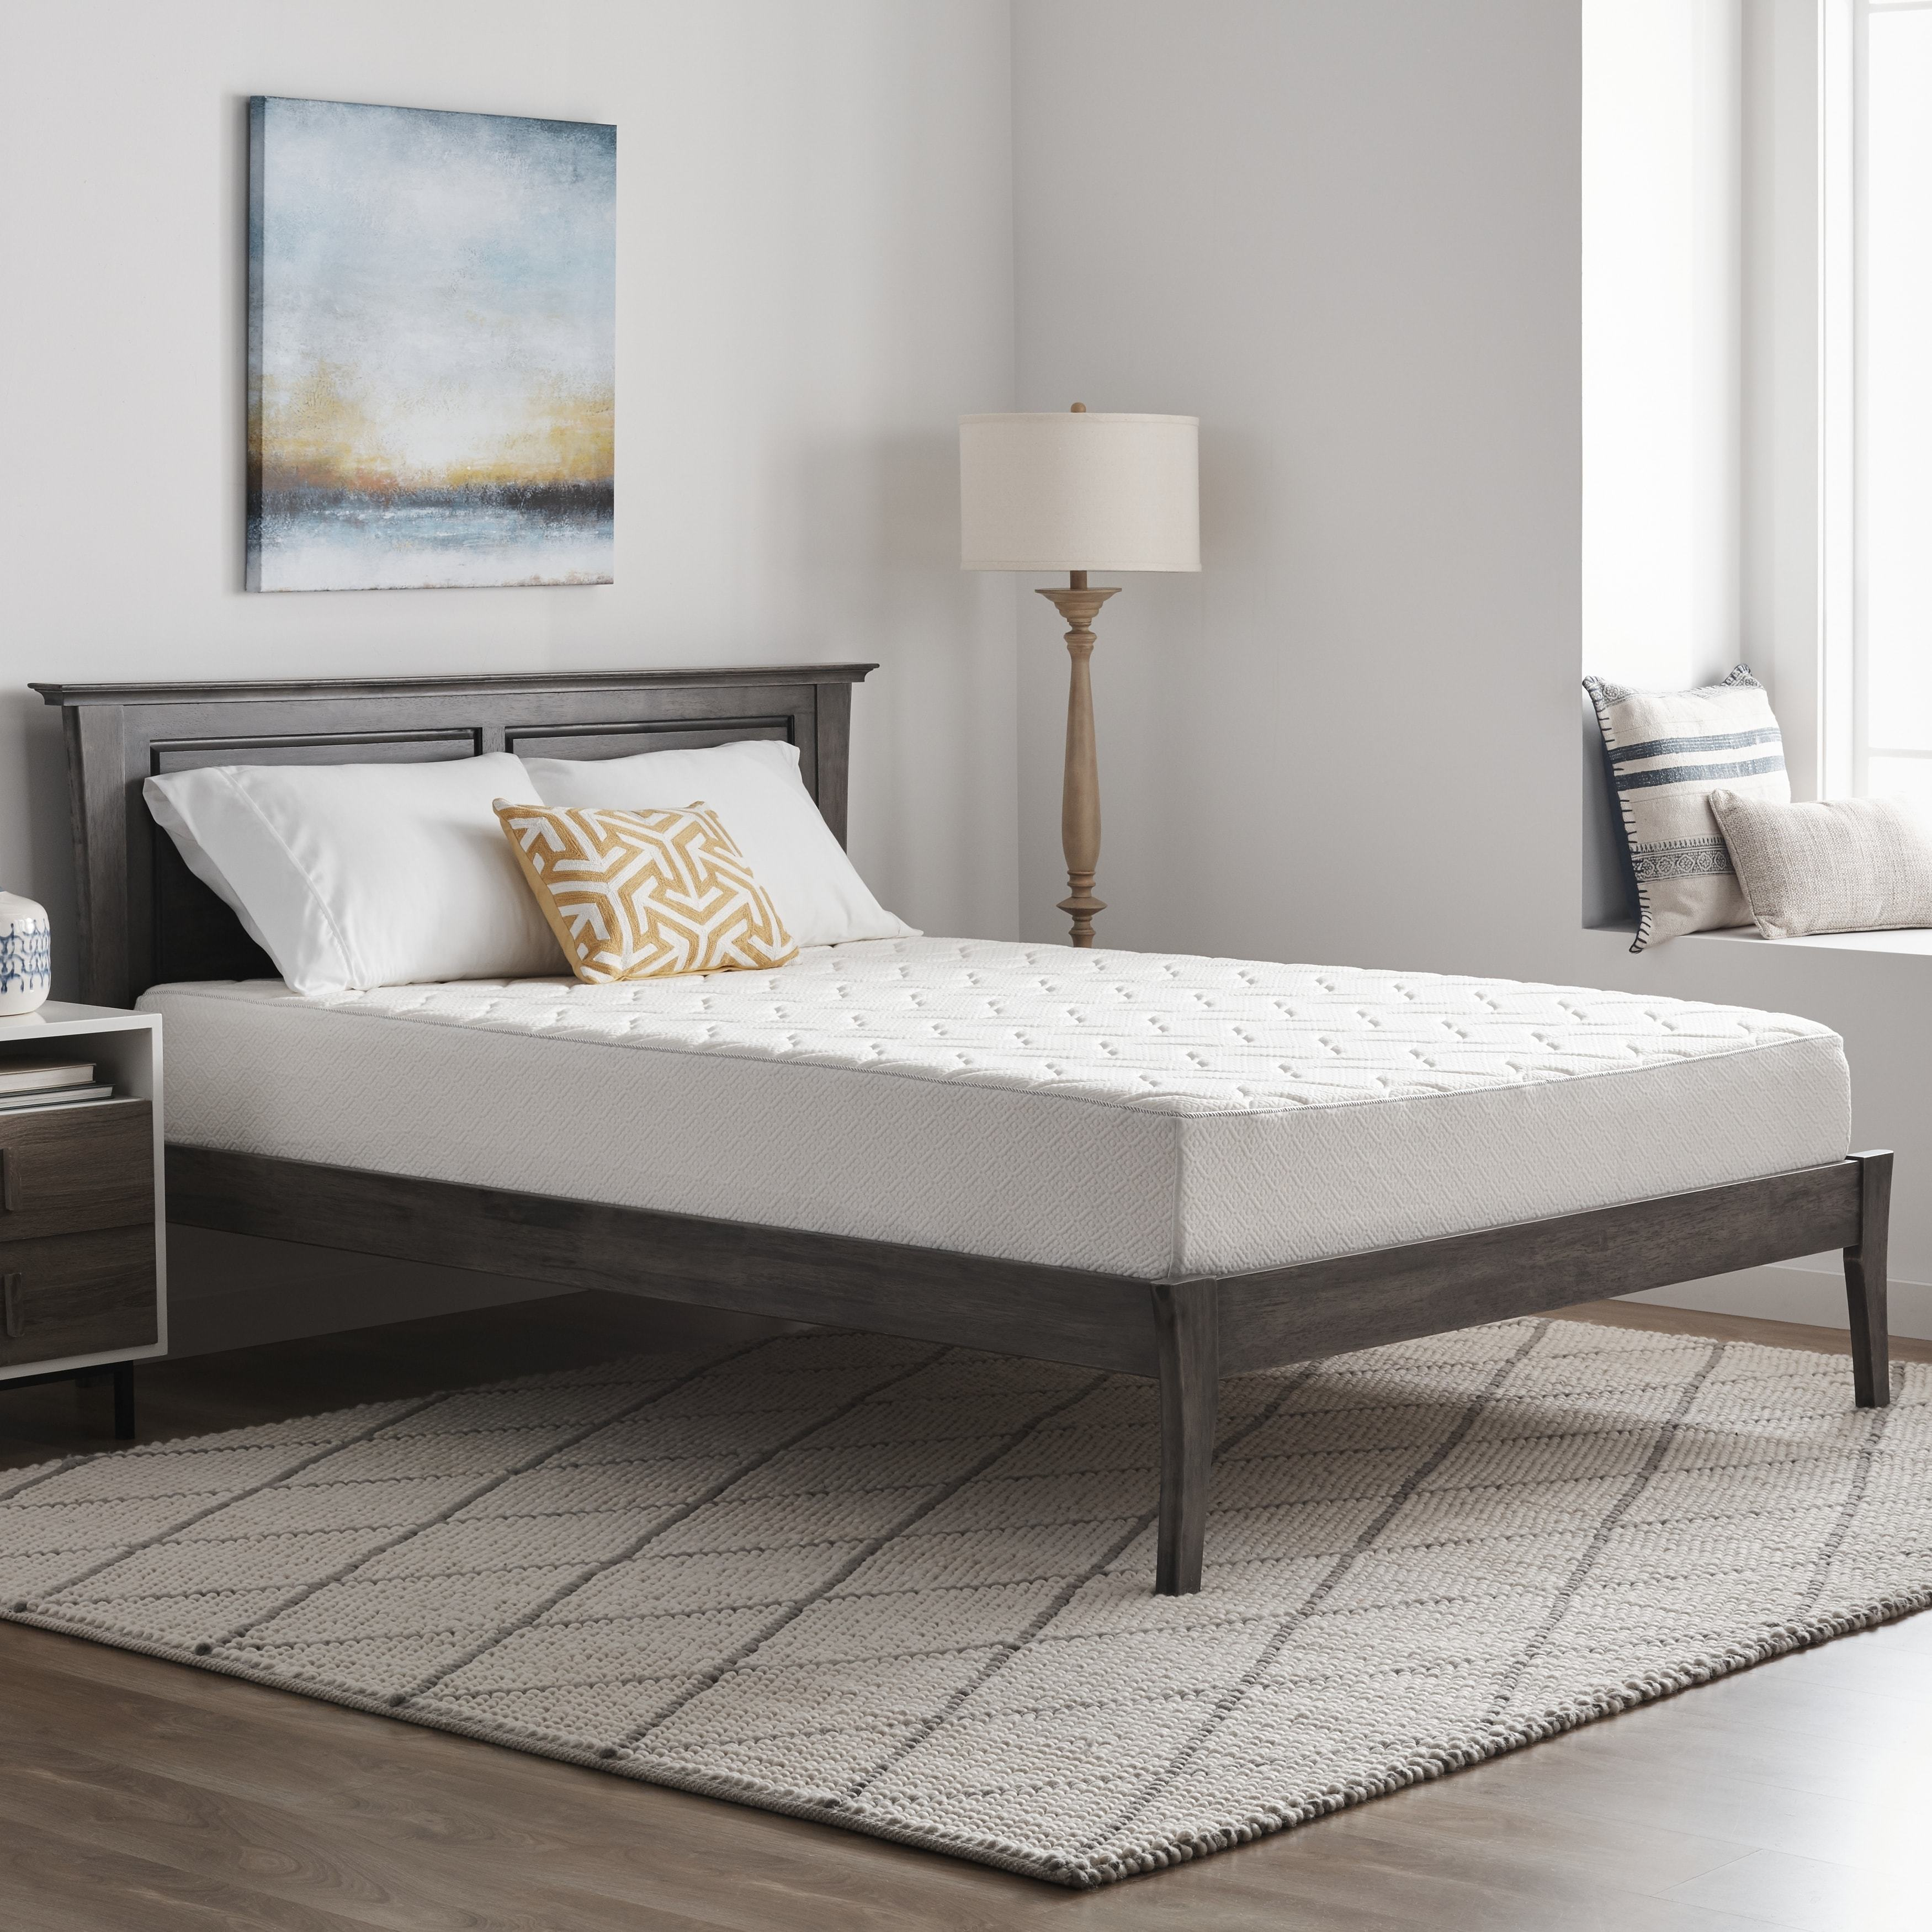 Loftworks Queen Size Medium Firm 10 Inch Memory Foam Mattress With Quilted Euro Top On Free Shipping Today 6045772